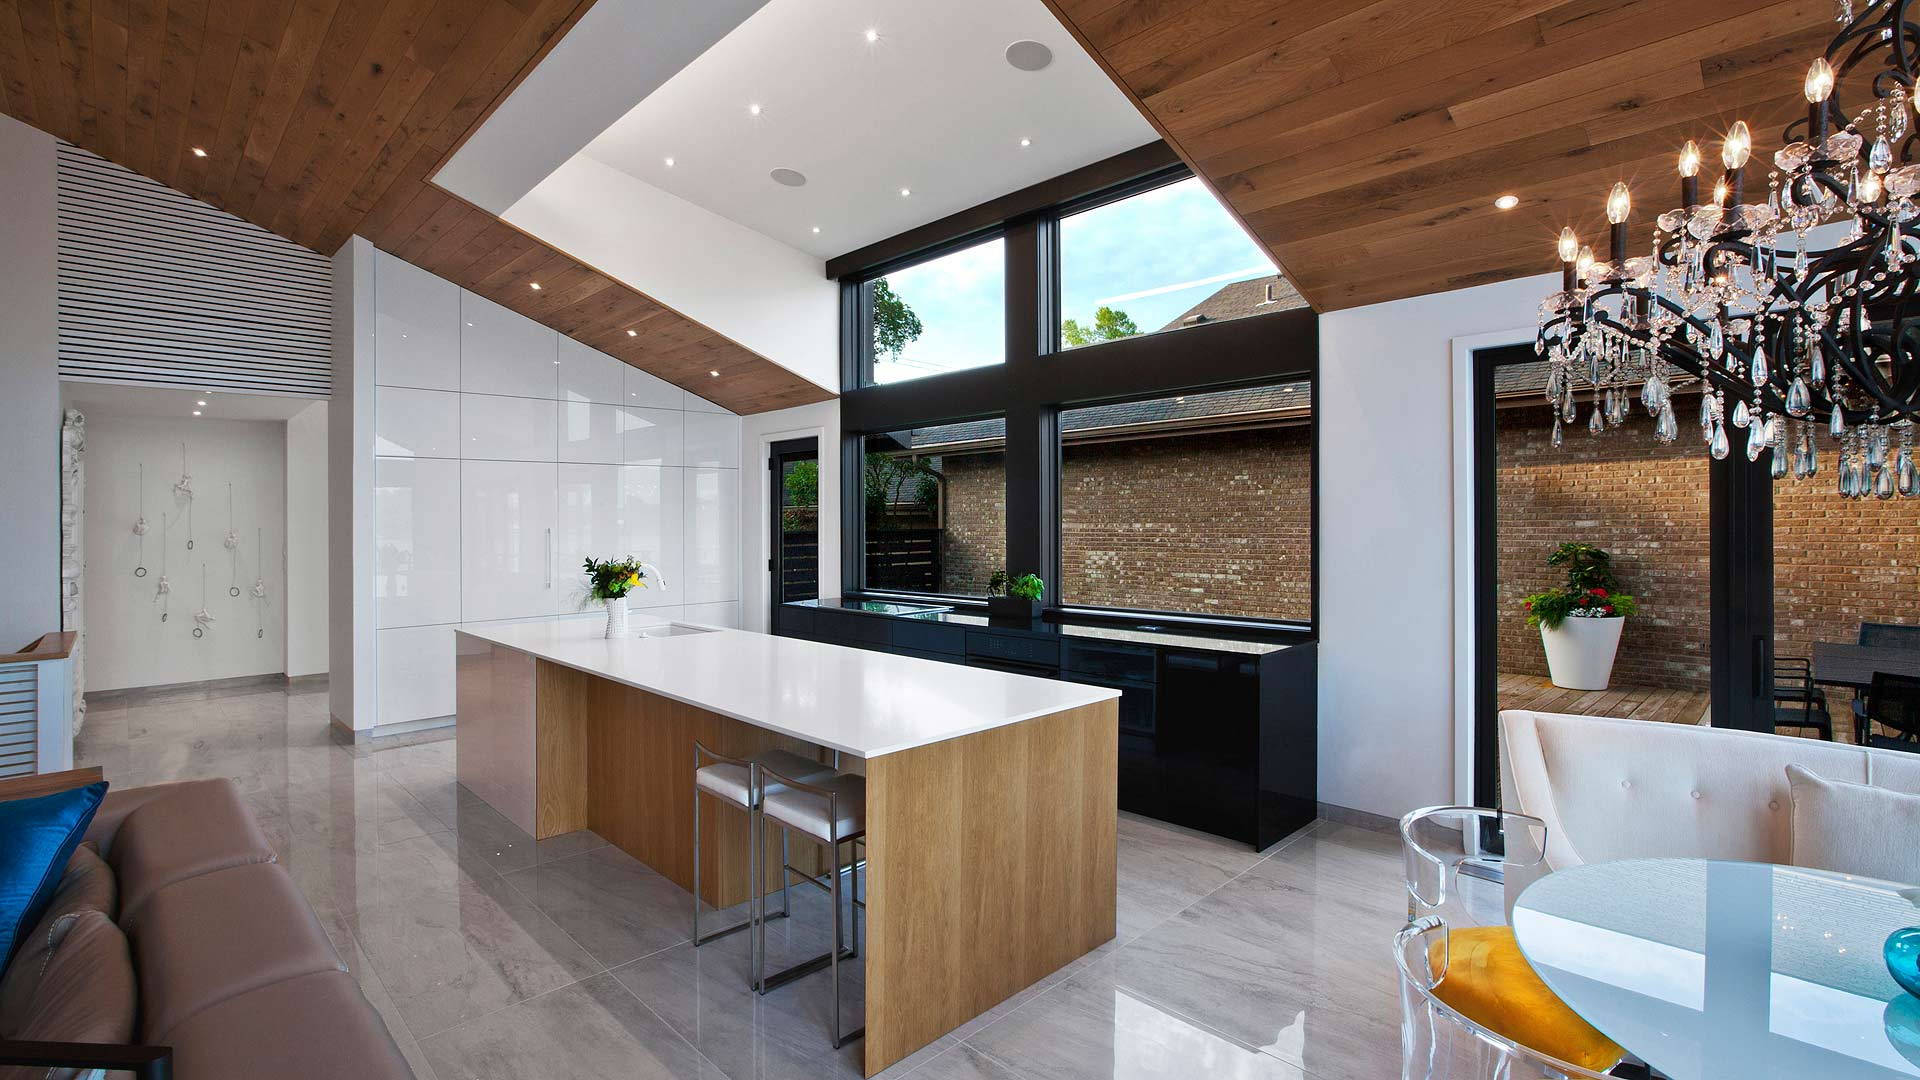 New kitchen is highlighted by the oversized south facing dormer, giant 14-foot island, black back counter, glass chandelier, and vaulted white oak ceiling - Modern Lakehouse Renovation - Clearwater